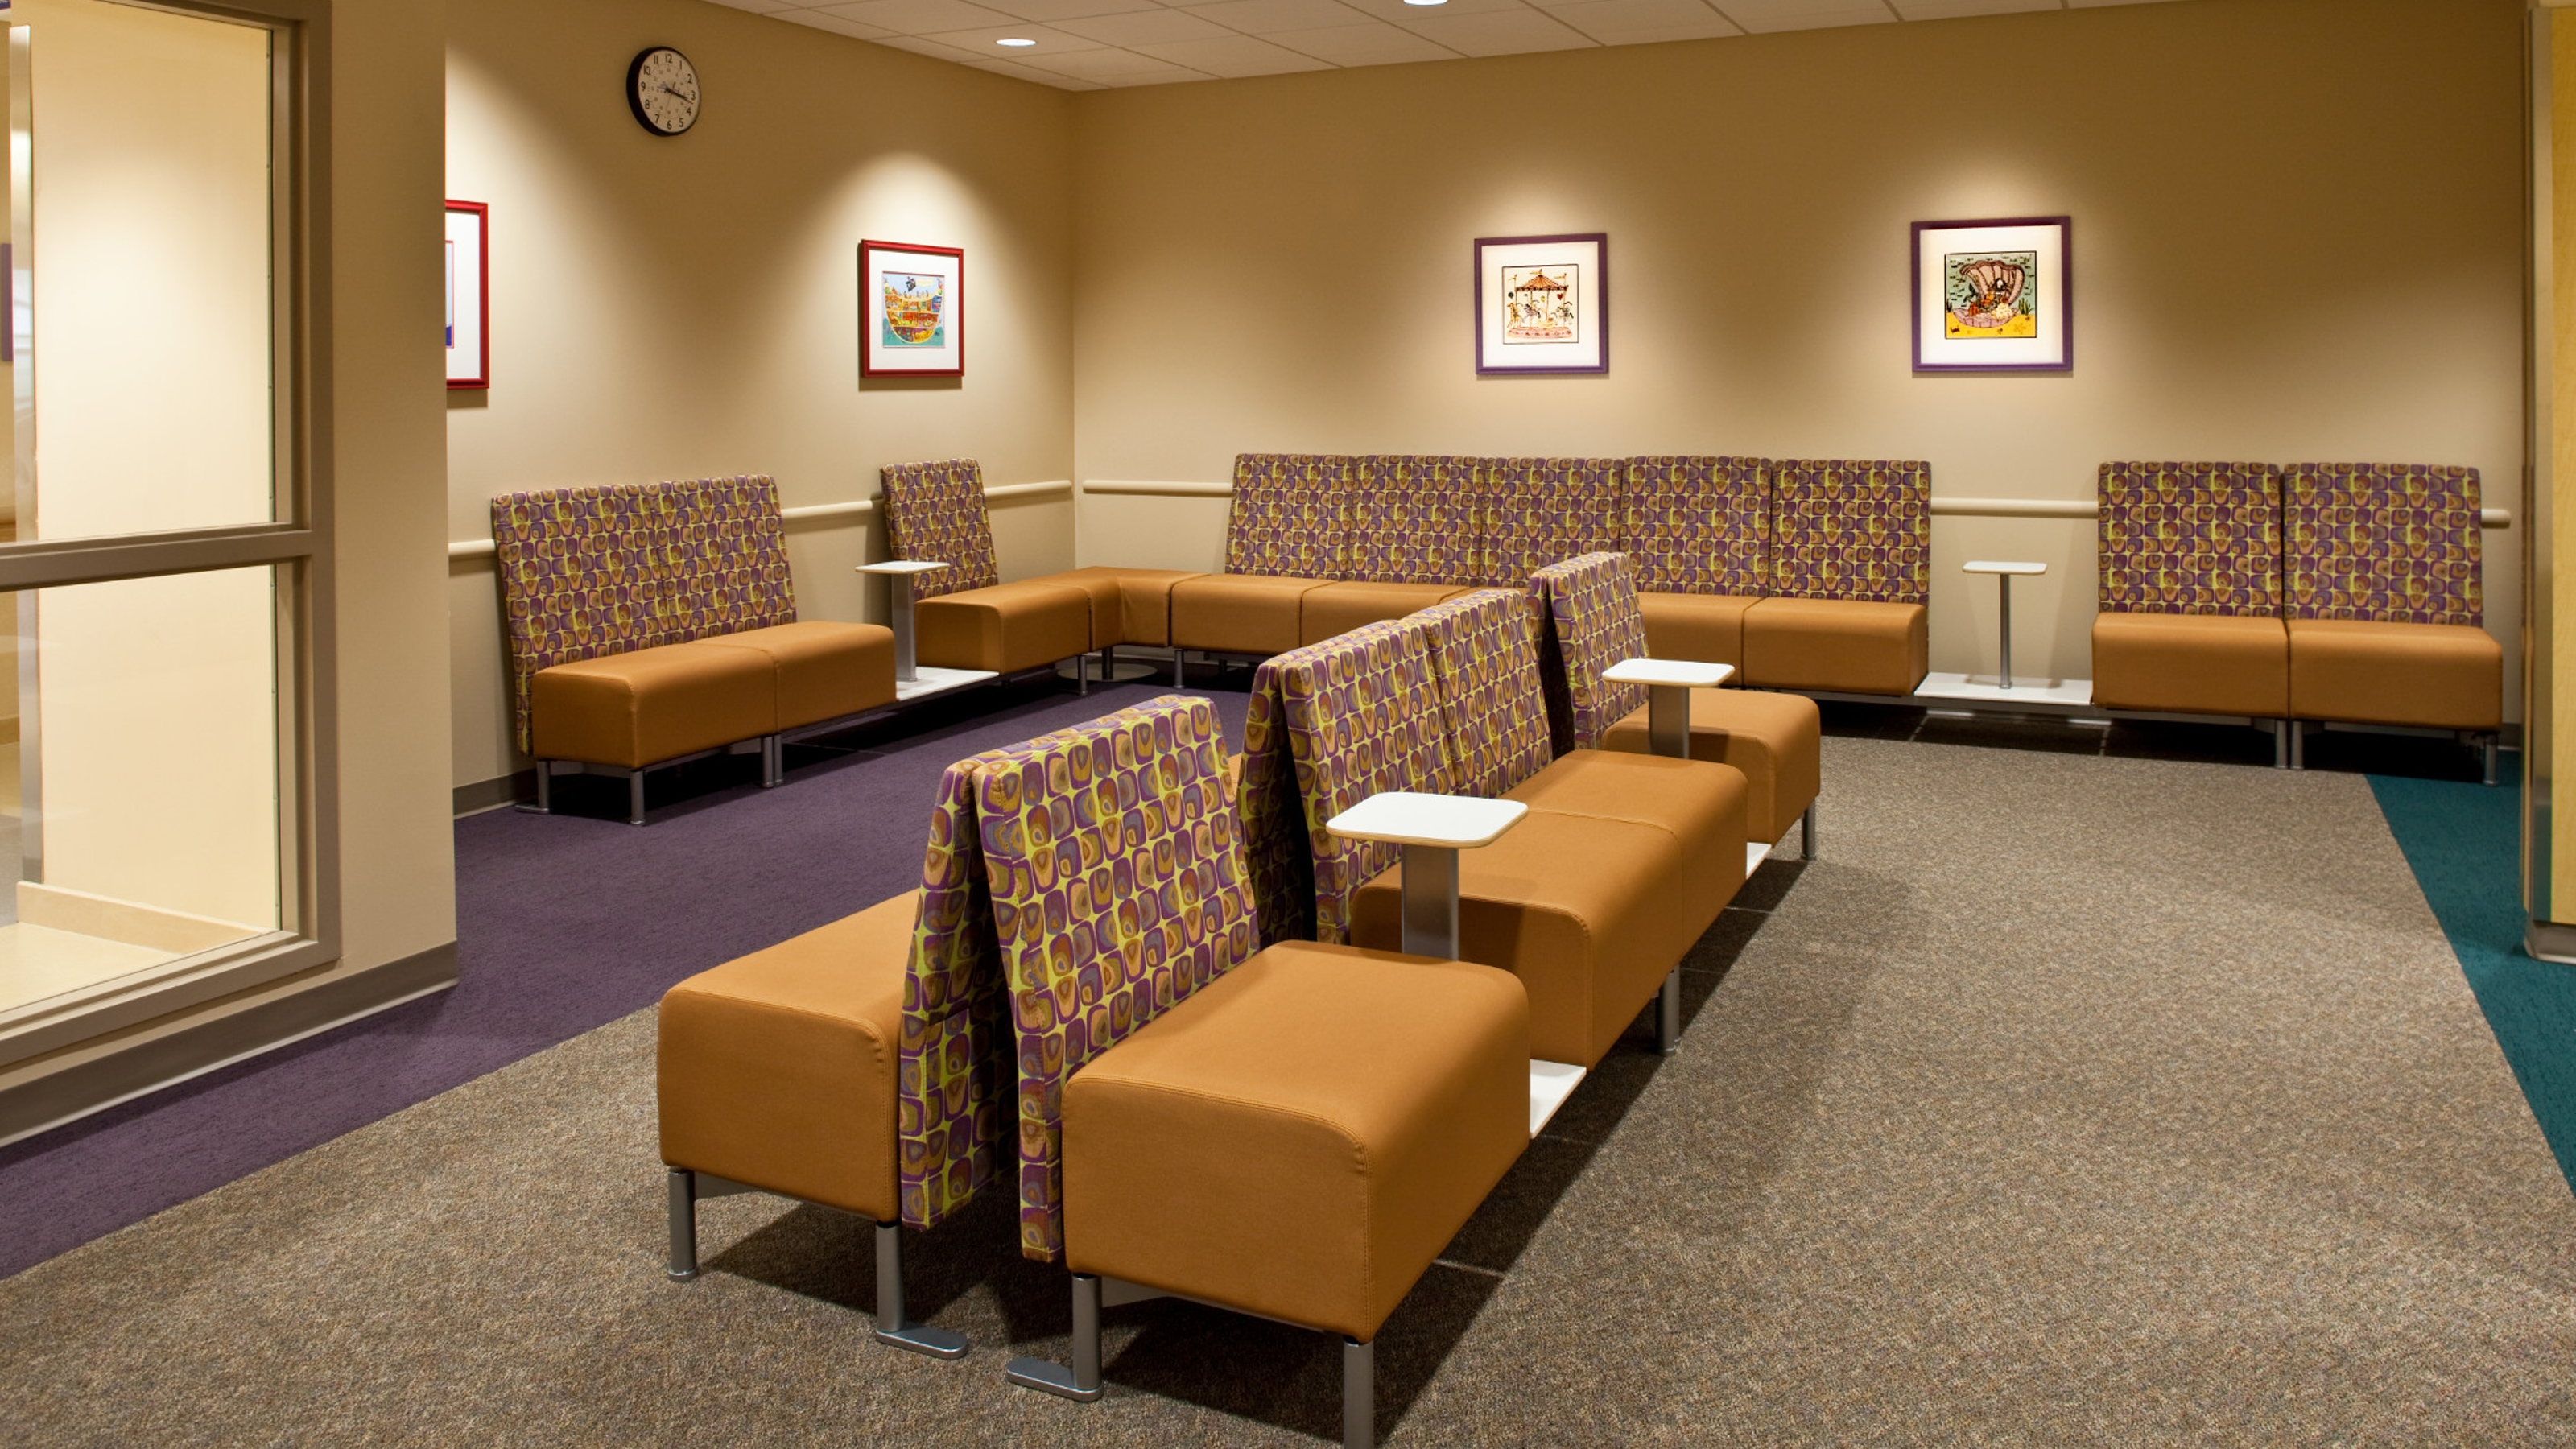 All Childrens Hospital  Steelcase